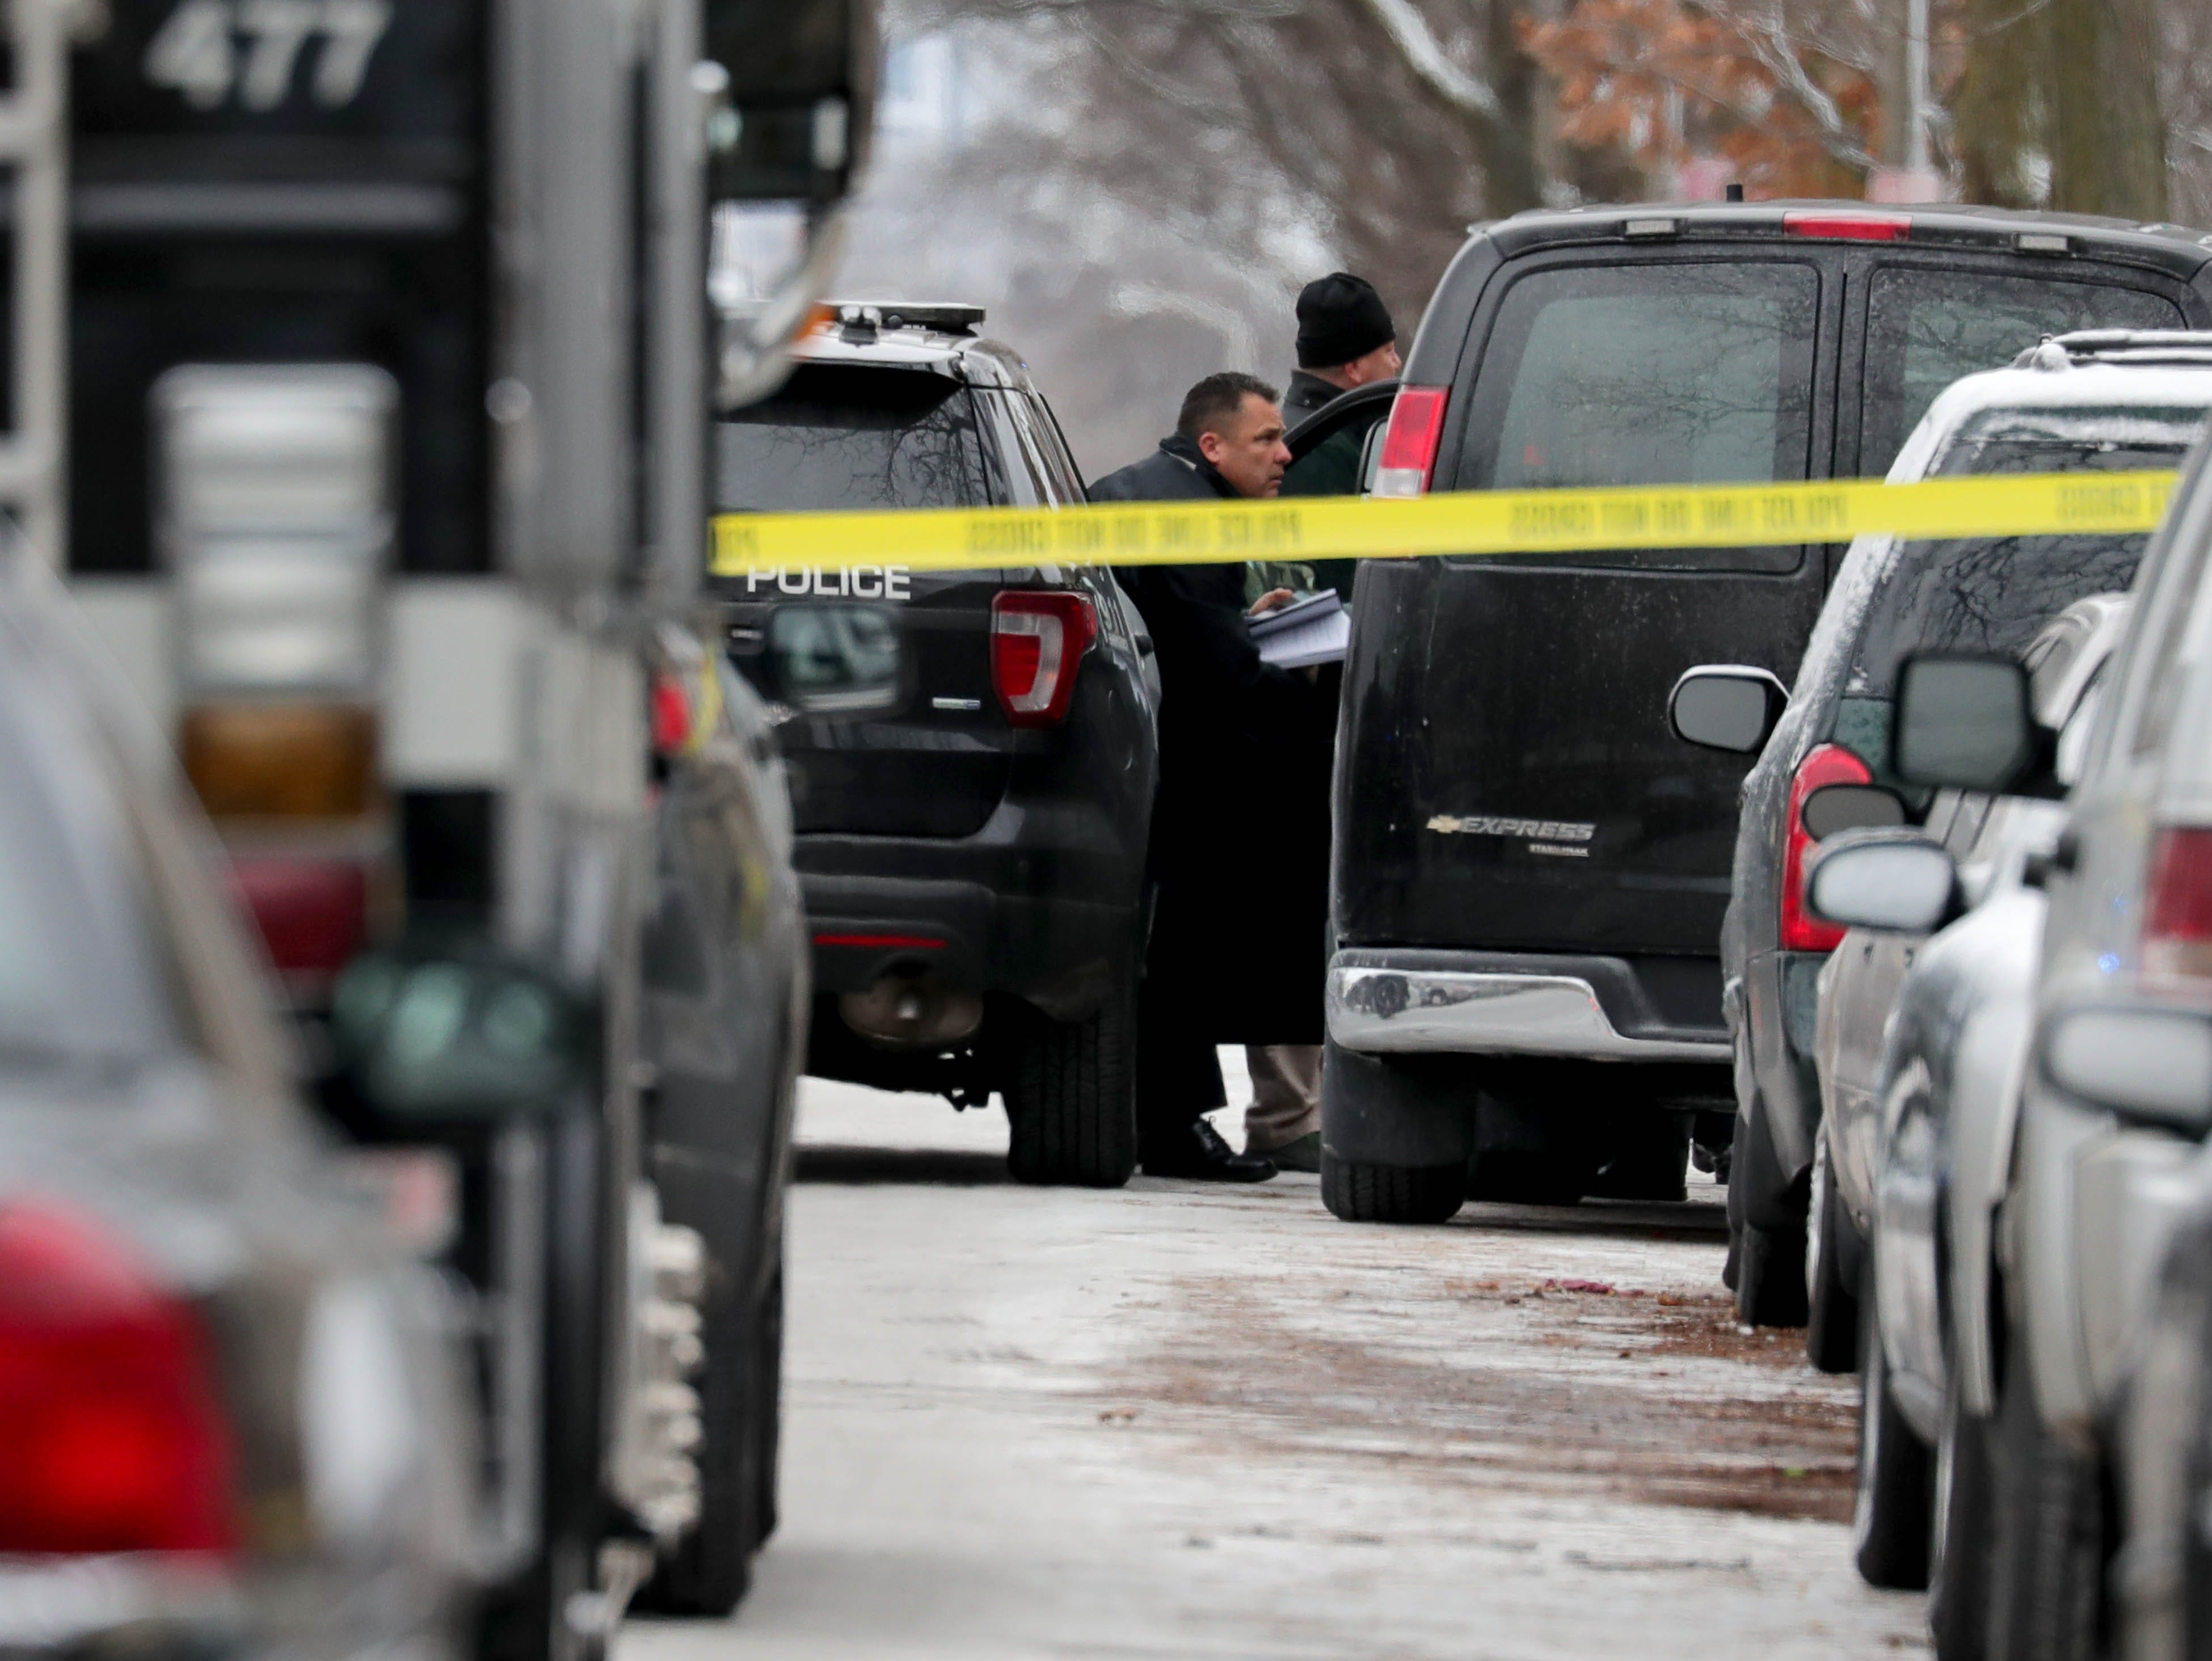 Milwaukee police investigate the scene of what is believed to be an officer-involved shooting.